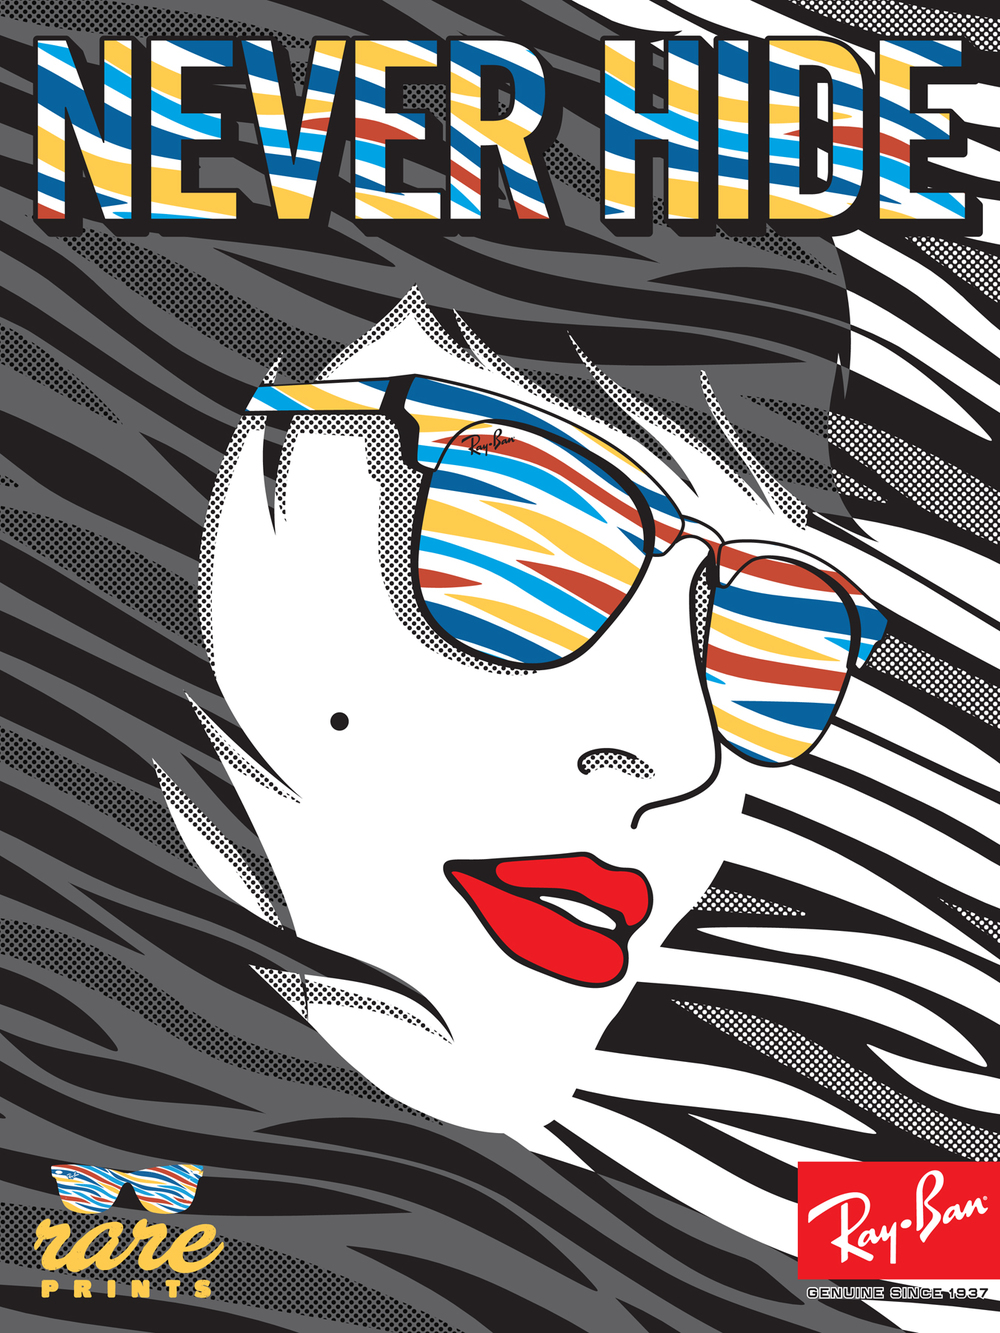 Ray-Ban, Never Hide, Rare Prints, Girl, Hair